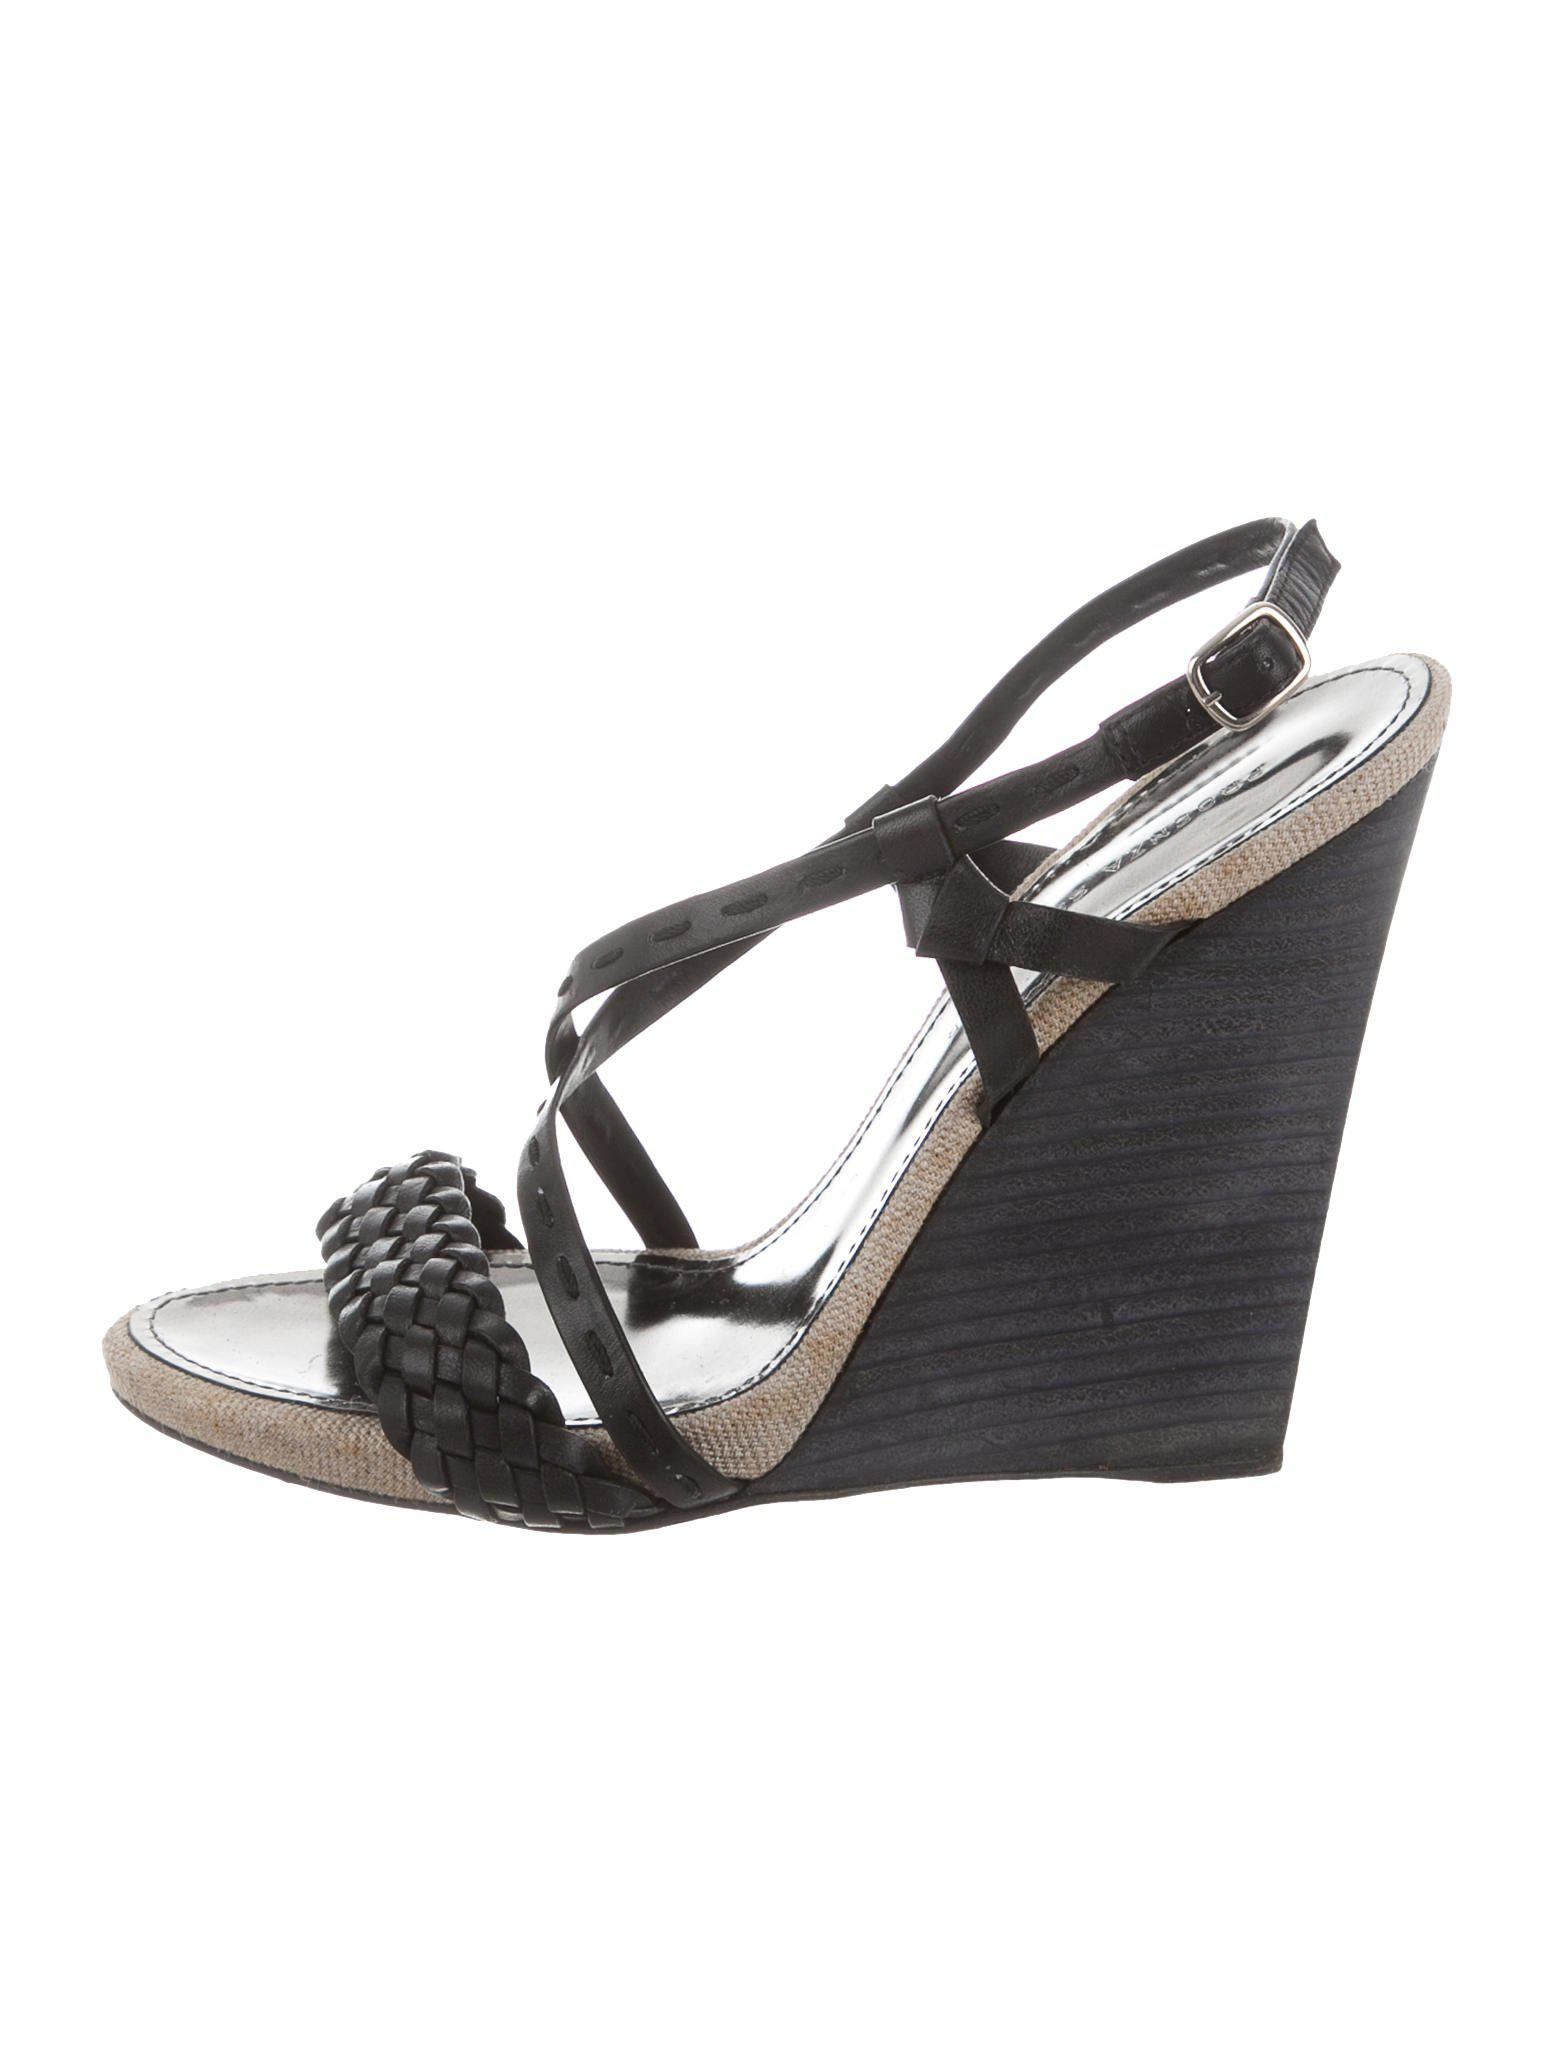 91f72d421744 Lyst - Proenza Schouler Leather Wedge Sandals in Black